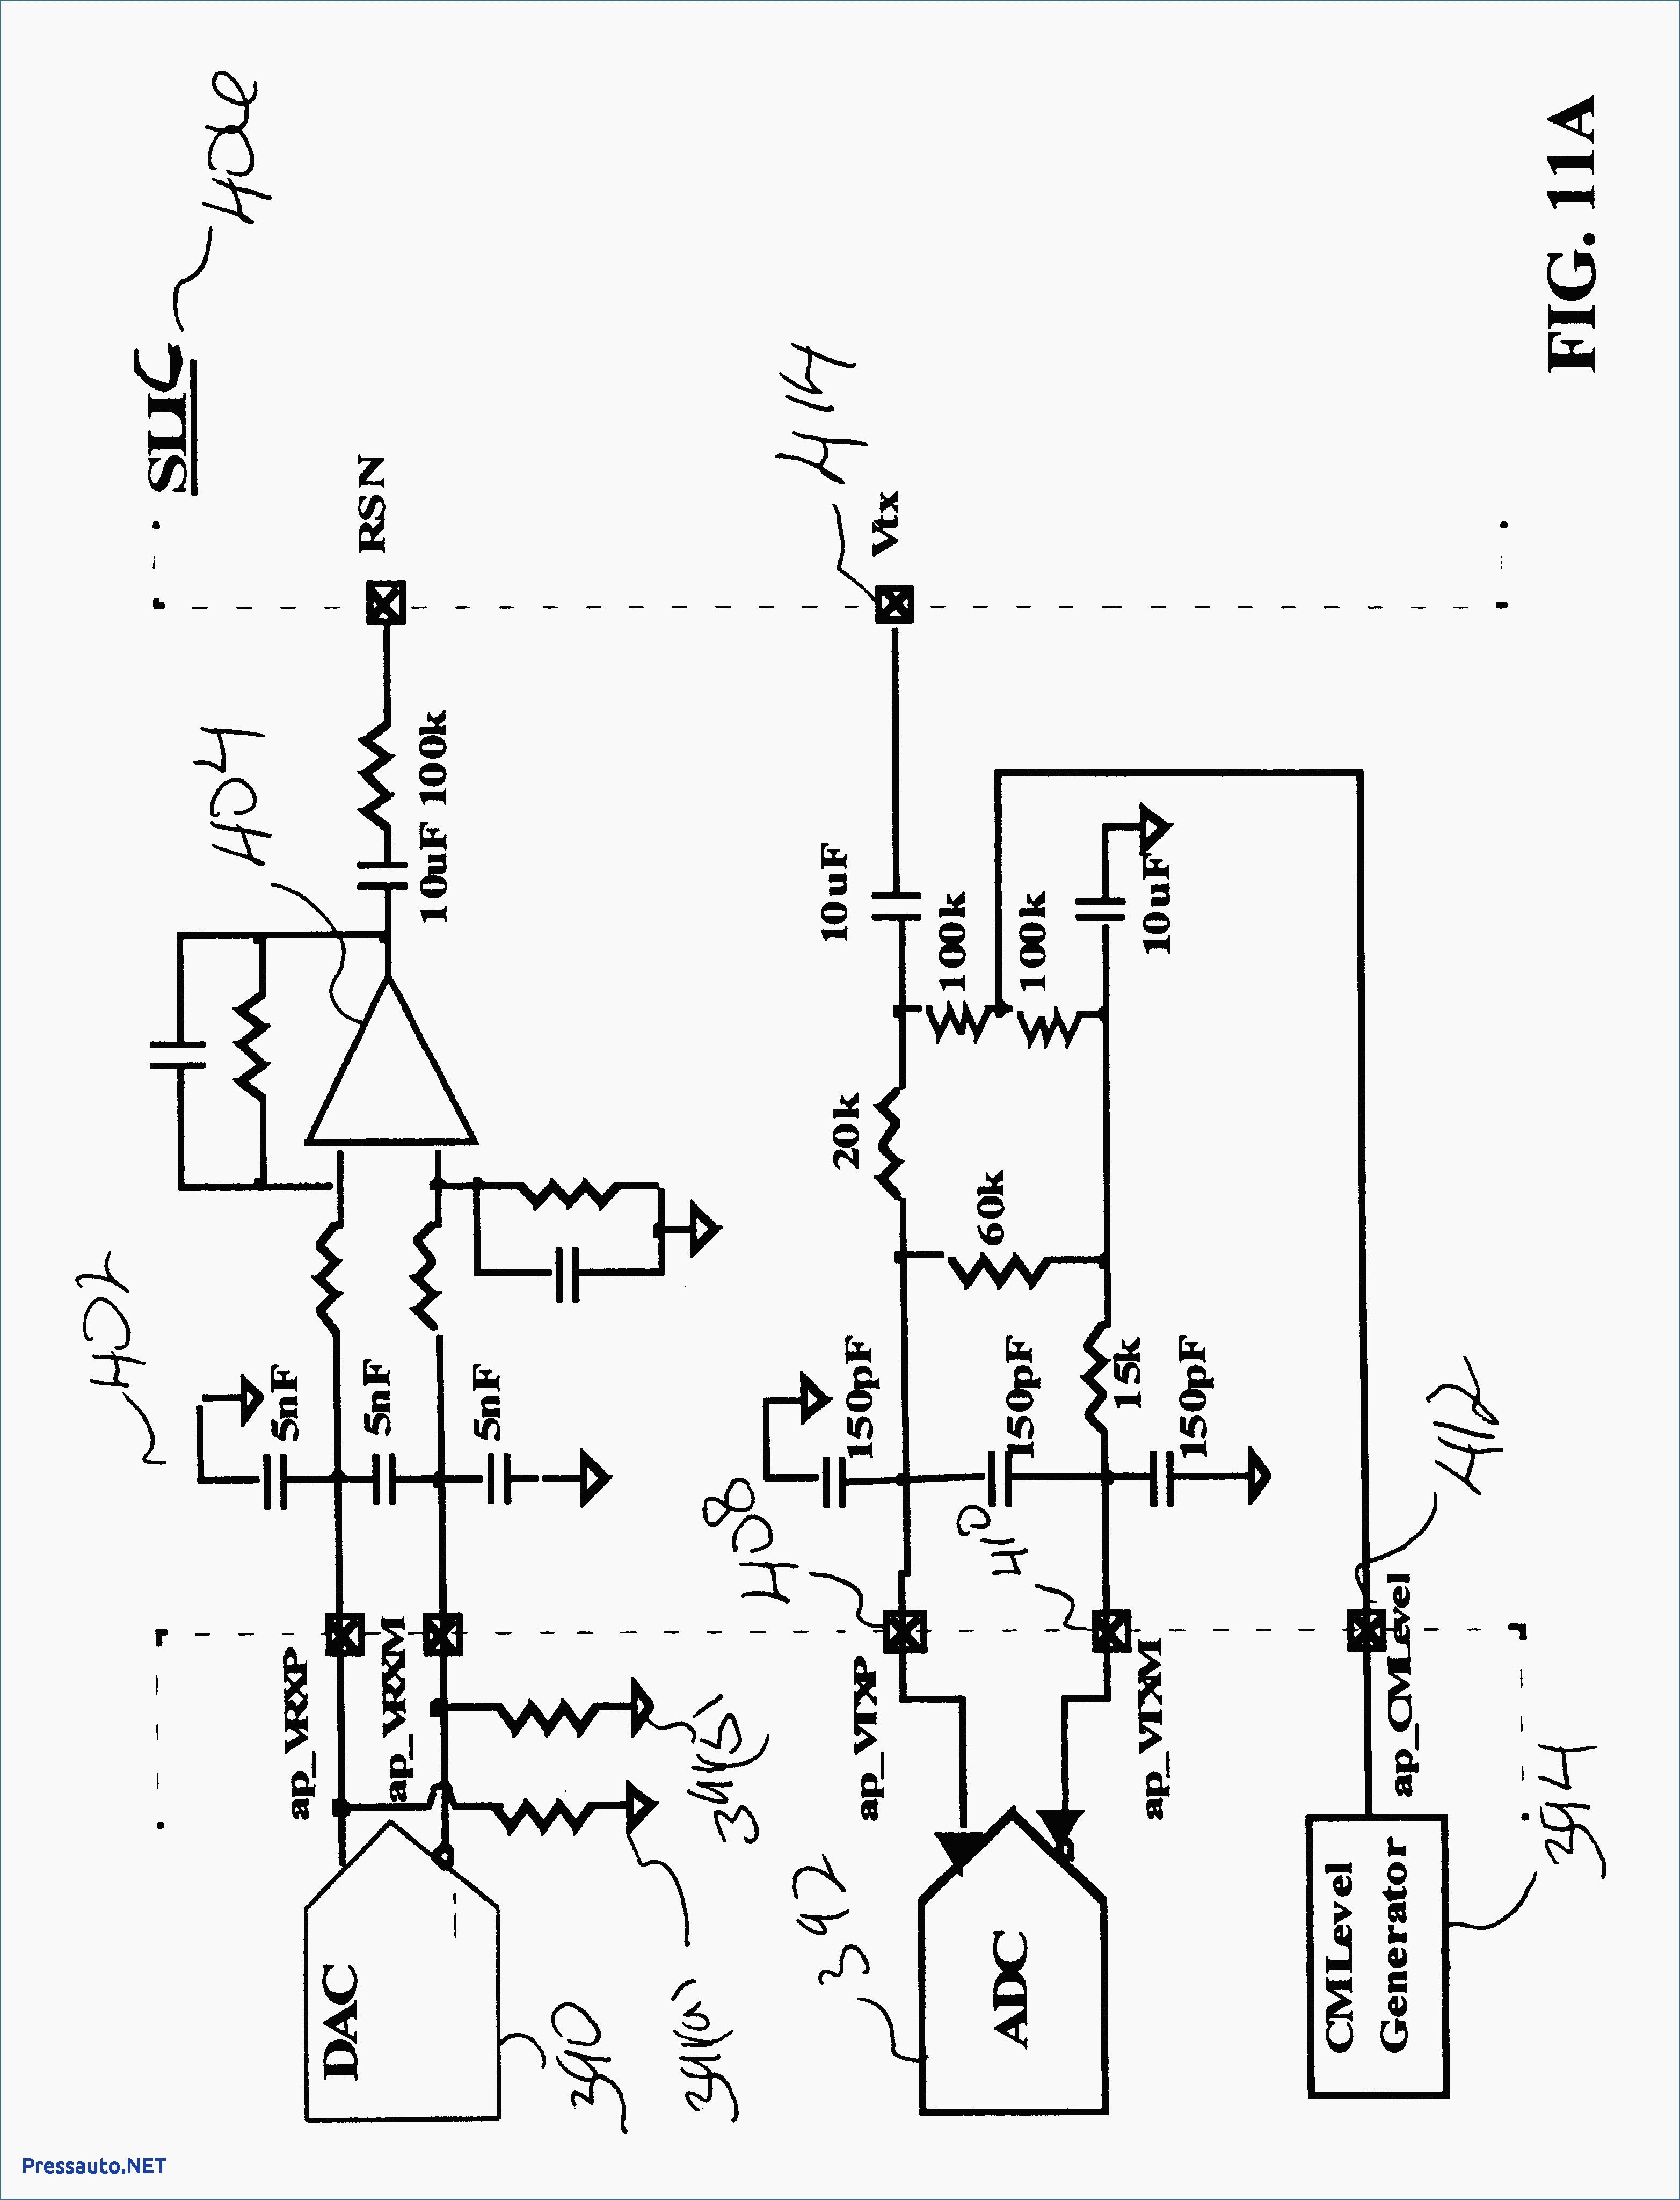 Buck And Boost Transformer Wiring Diagram